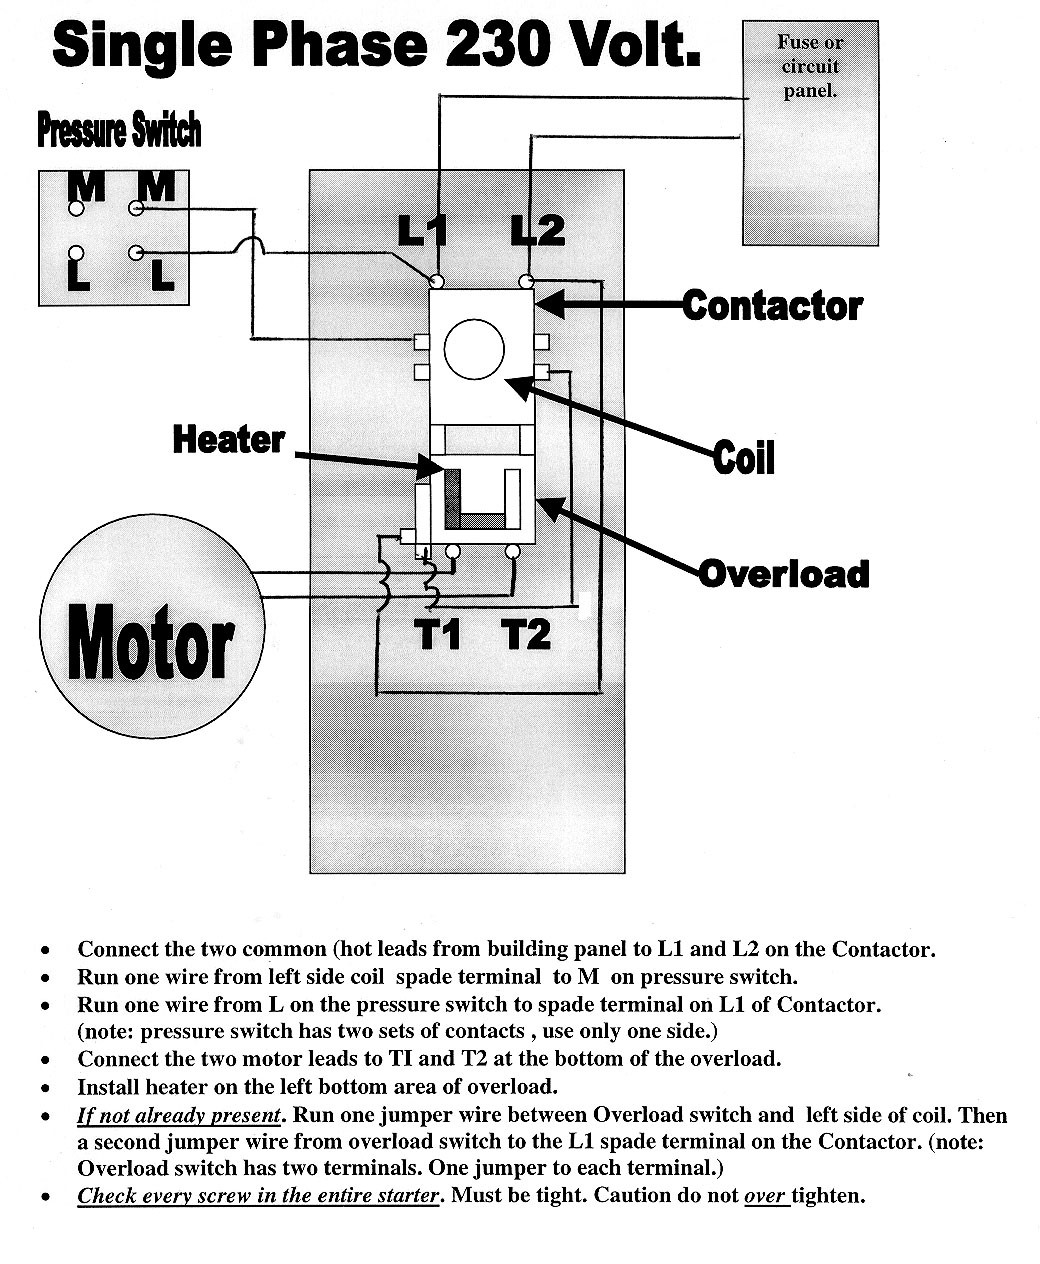 Single Phase Wiring Diagram | Wiring Diagram on baldor motor wiring diagram, 3 wire single phase wiring diagram, 3 phase 6 wire motor wiring diagram, 3 phase convection oven wiring diagram, 240v 3 phase wiring diagram, cutler hammer motor starter wiring diagram, 480v 3 phase wiring diagram, 3 phase panel wiring diagram, 240 volt wiring diagram, 3 phase transformer wiring diagram, spa gfci breaker wiring diagram, 3 phase plug wiring diagram, 3 phase switch wiring diagram, 3 phase outlet wiring diagram, three-phase wiring diagram, 3 phase power wiring diagram, 3 phase starter wiring diagram, delta transformer wiring diagram, 3 phase 4 wire diagram, 3 phase water heater wiring diagram,